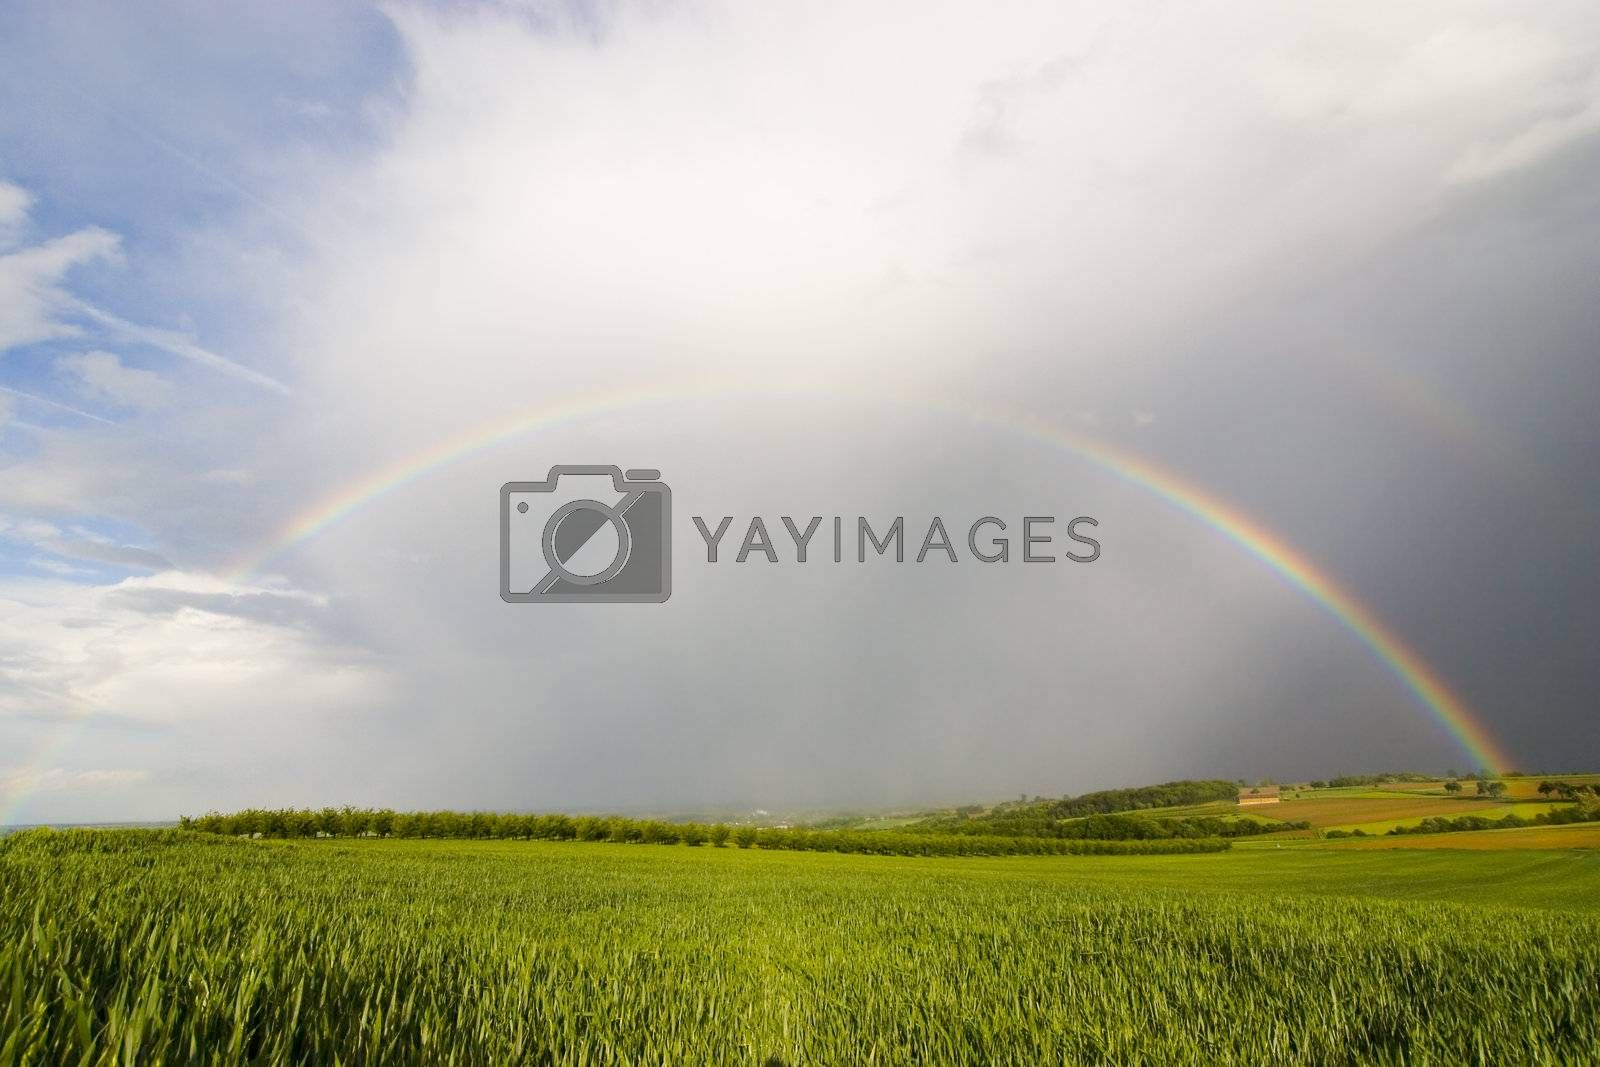 Complete rainbow over a rural landscape on a stormy day